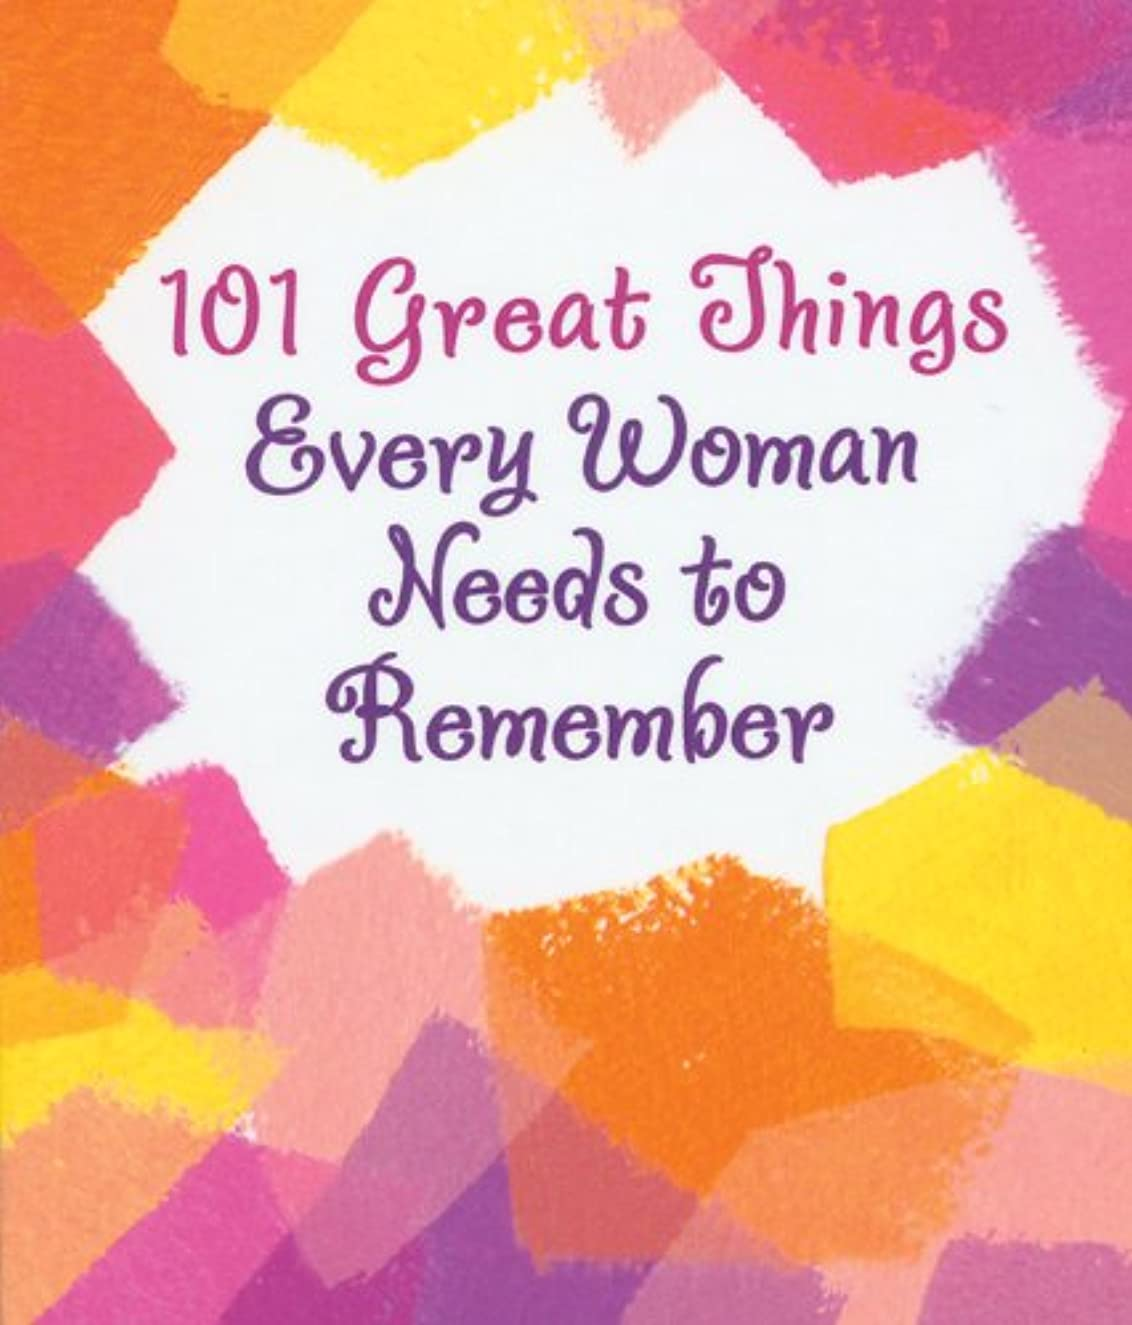 Little Keepsake Book: 101 Great Things Every Woman Needs to Remember, 2.75